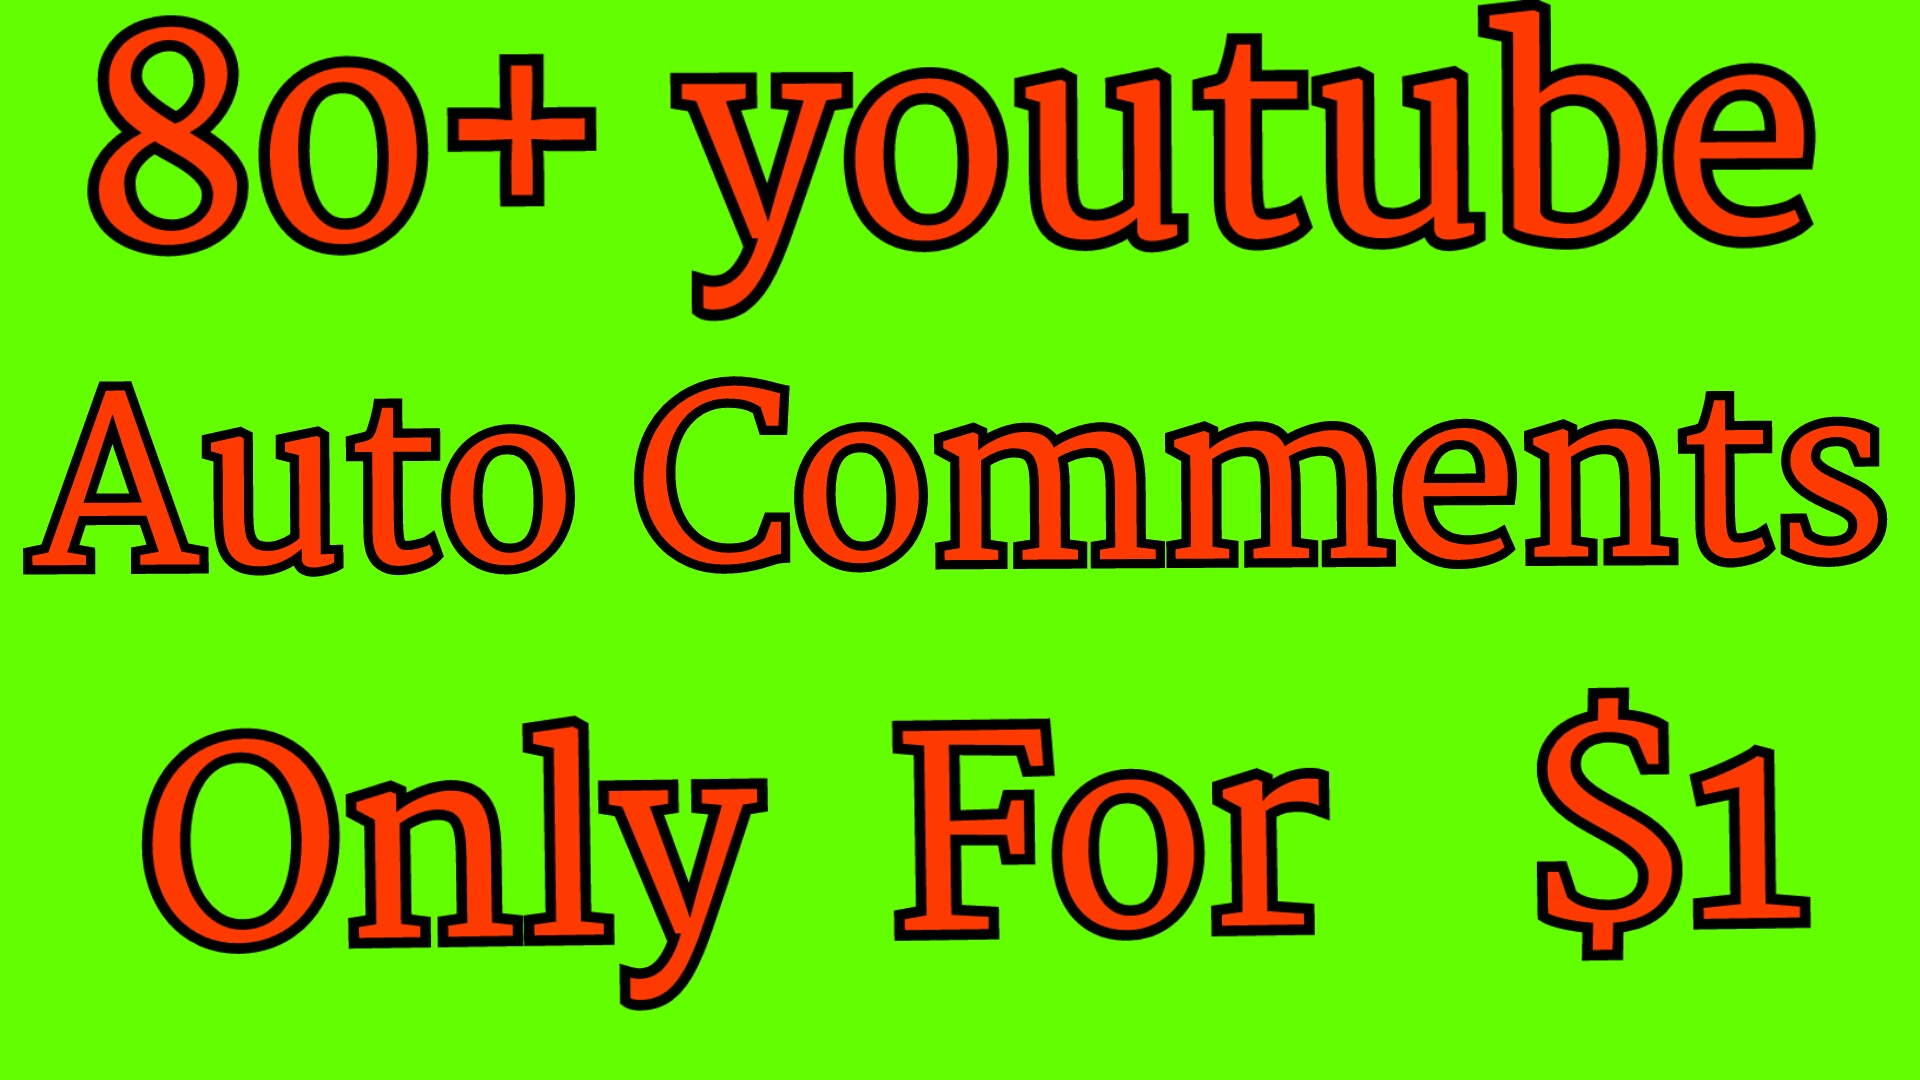 80+ youtube Auto Comment  give you  or 50+ youtube subscriber or 200+ youtube Like  give you